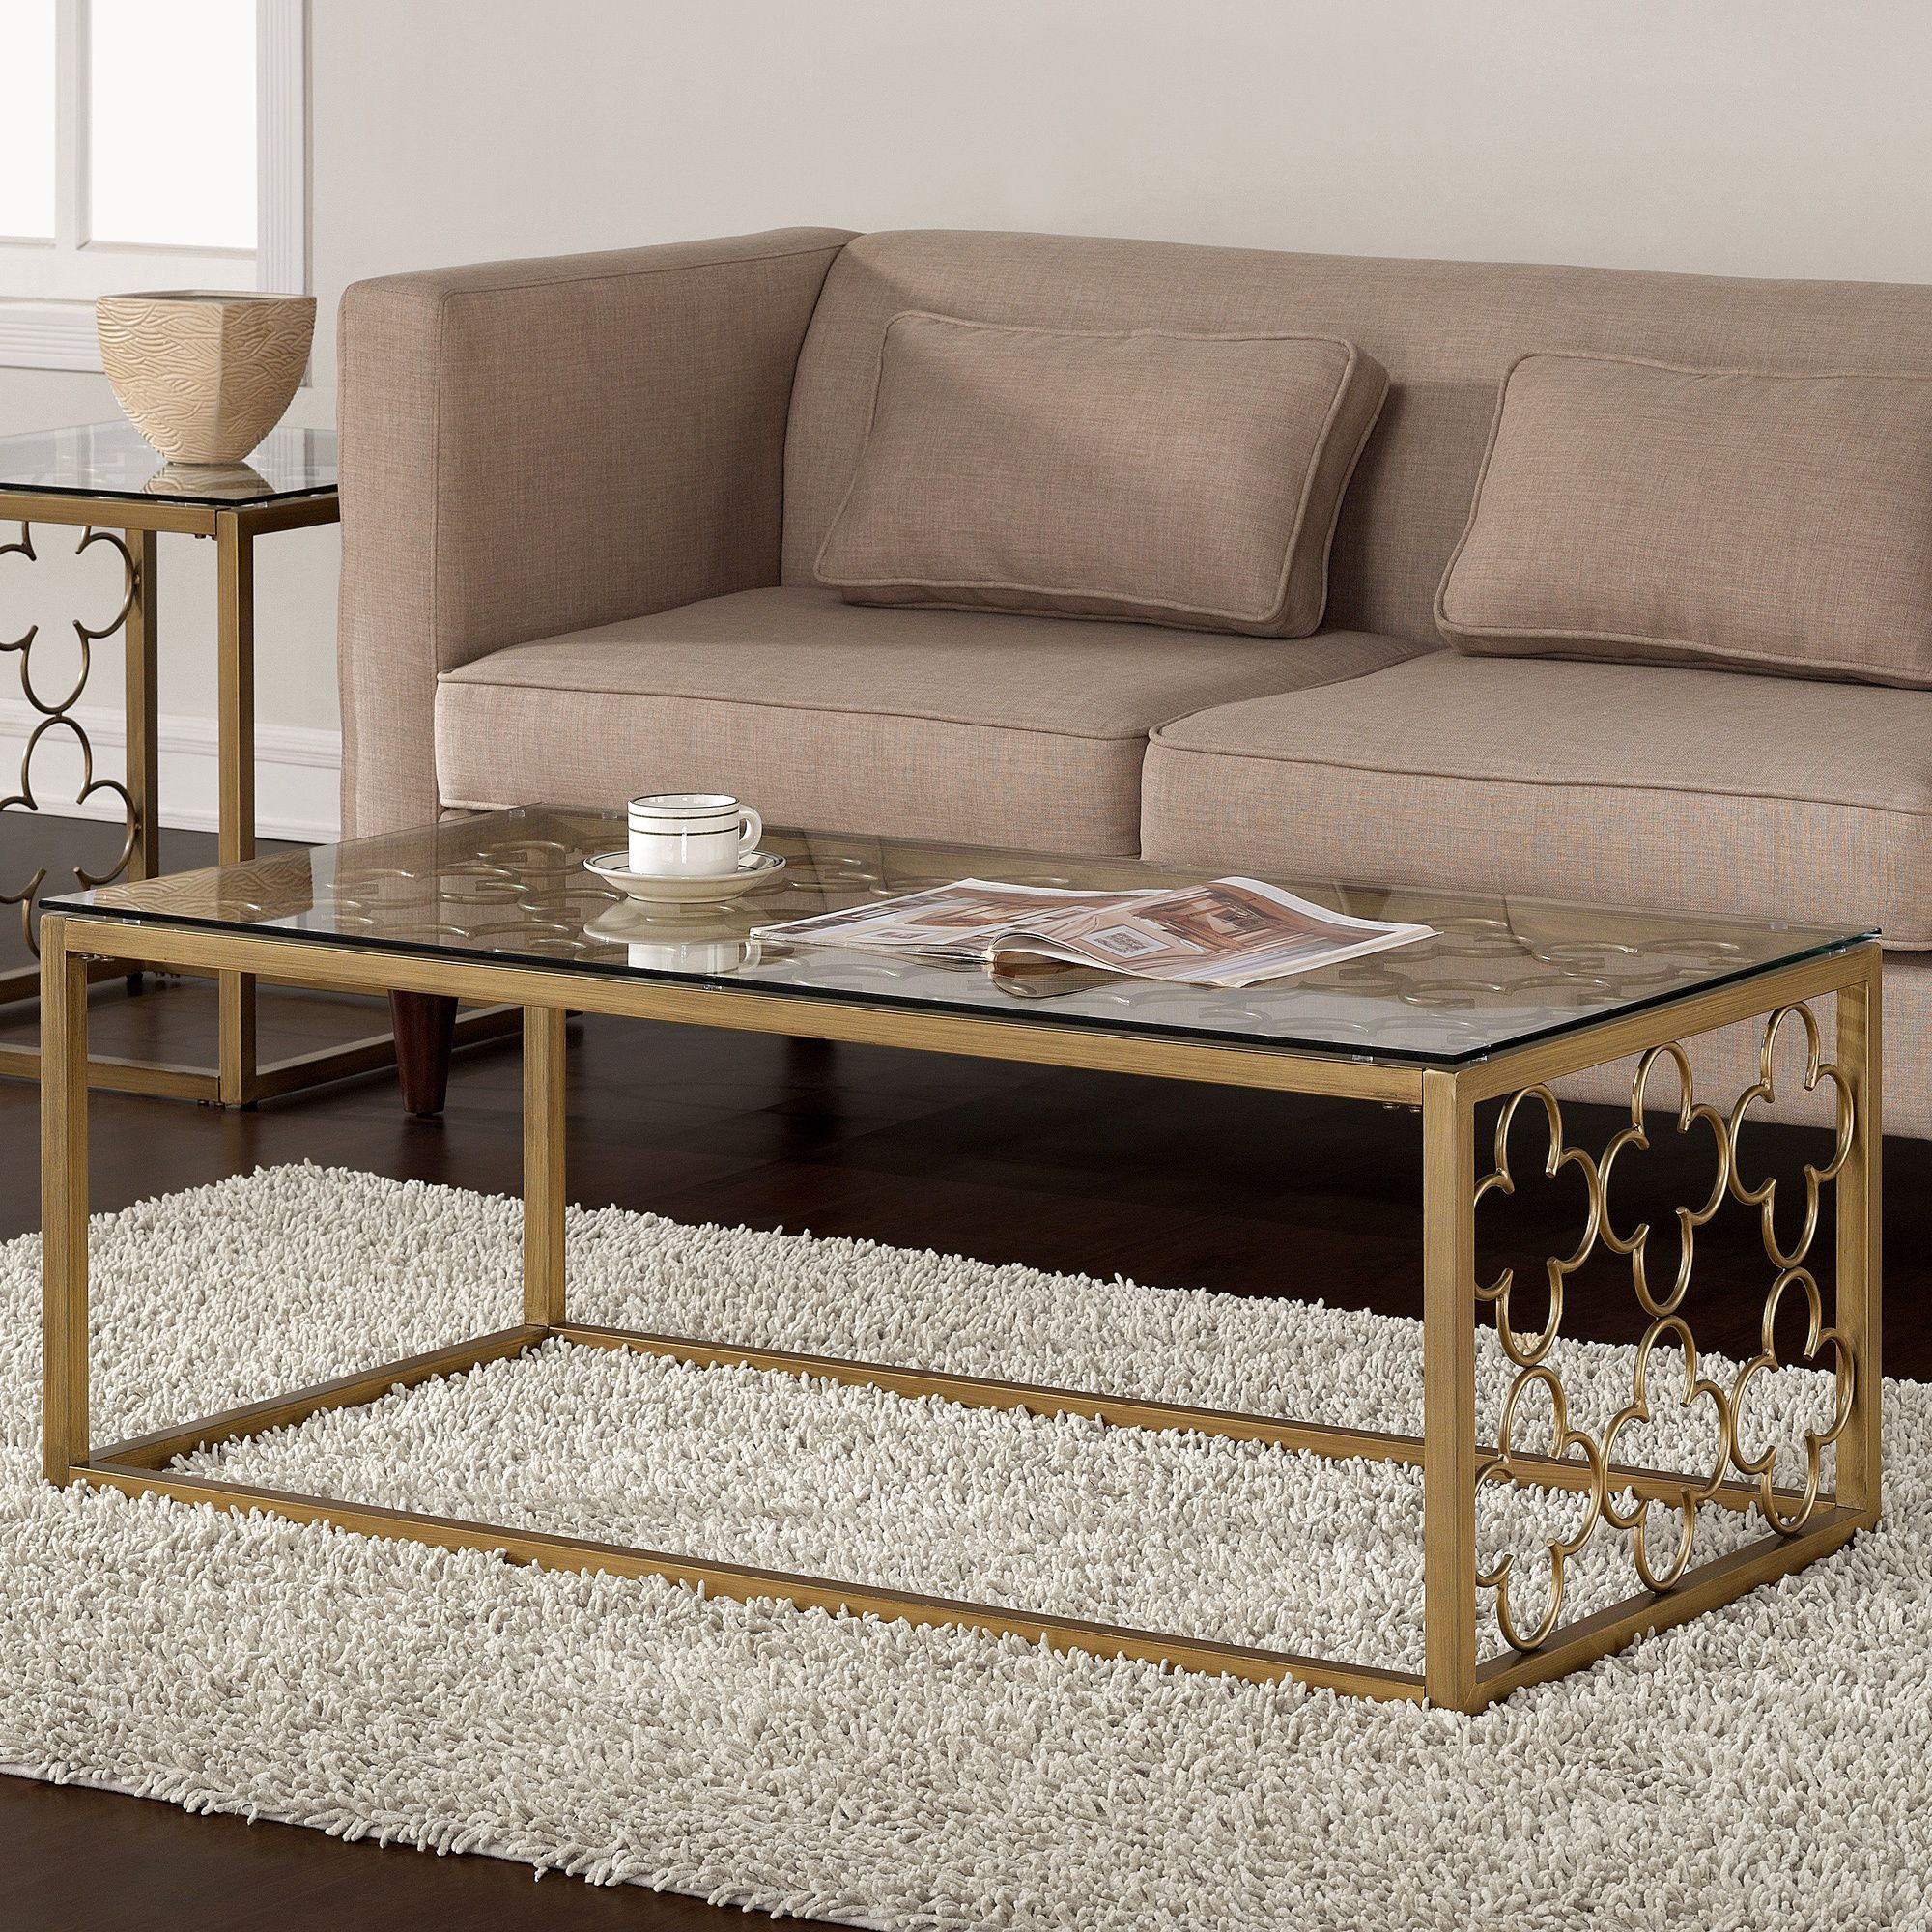 Designer Couchtisch Glas Metall Quatrefoil Goldtone Metal And Glass Coffee Table By I Love